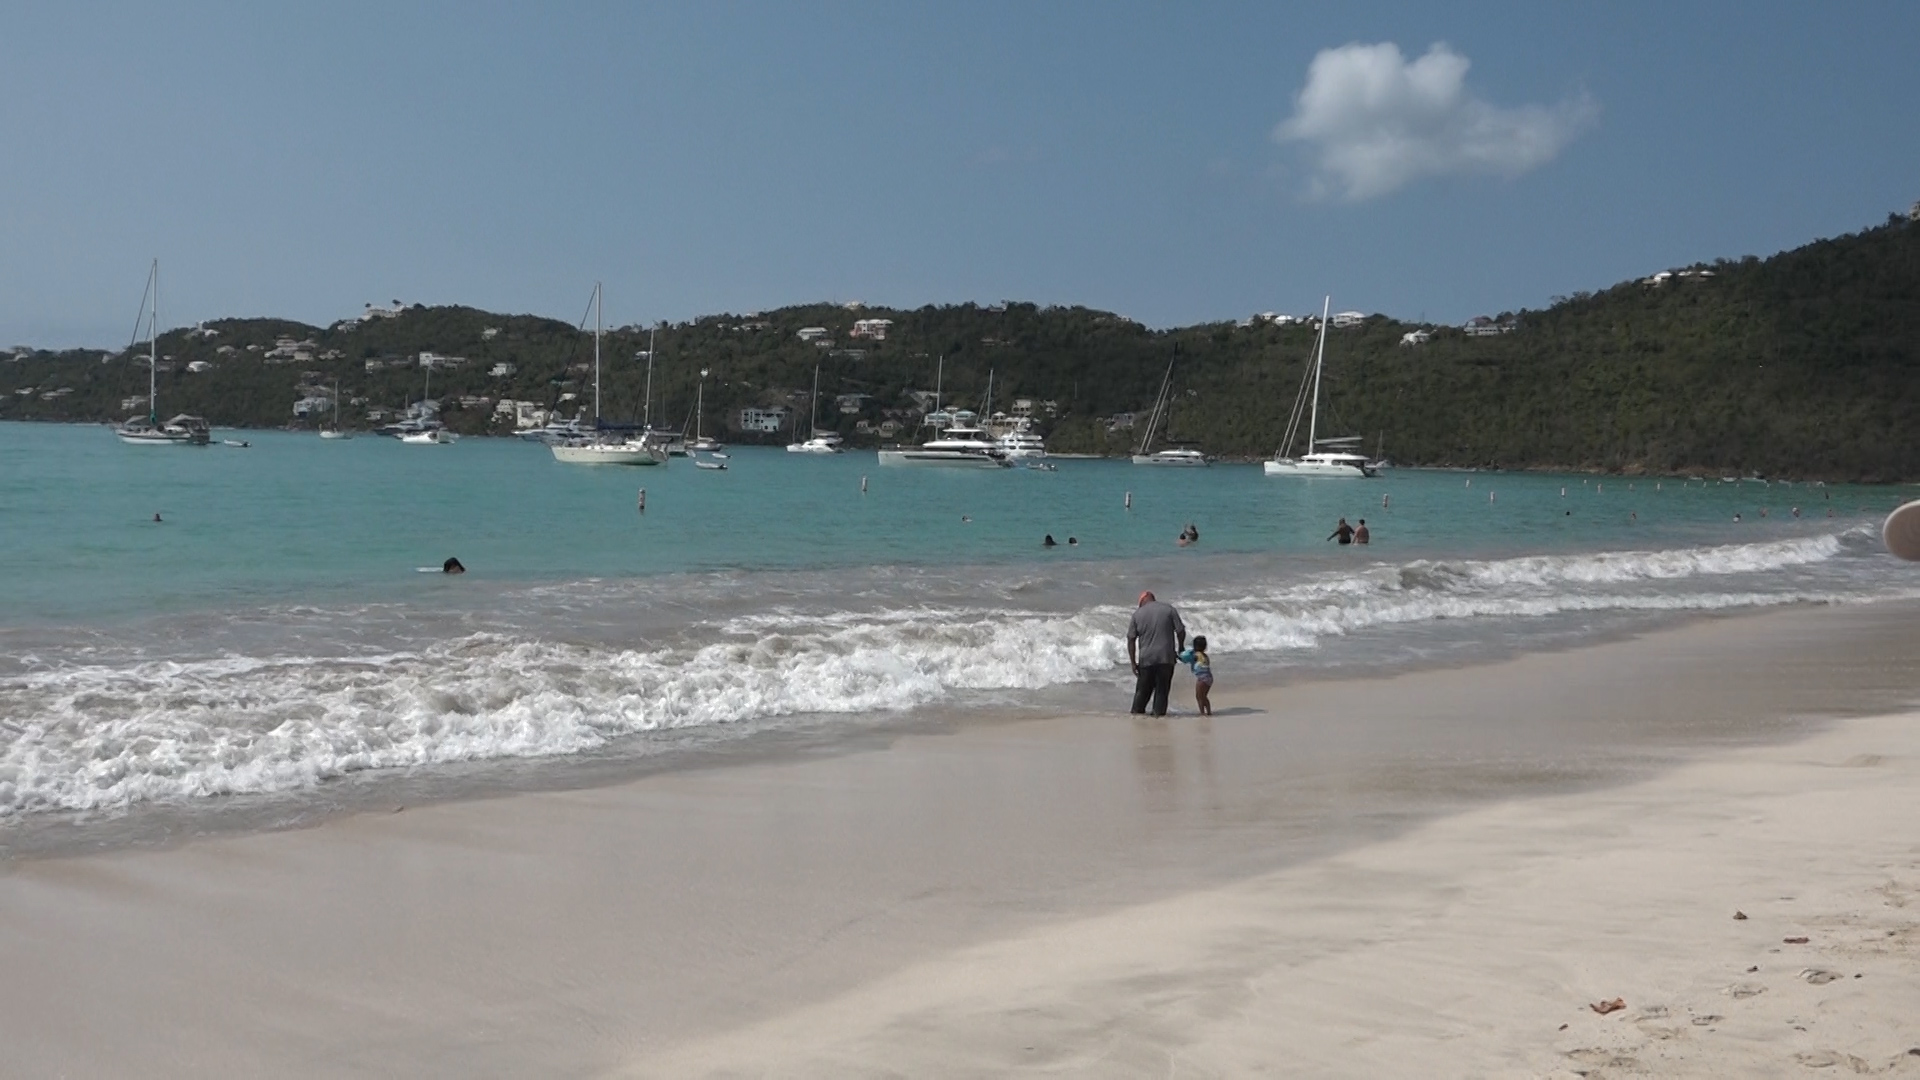 VI Beaches Closed for Two Weeks, Amid Coronavirus Concerns